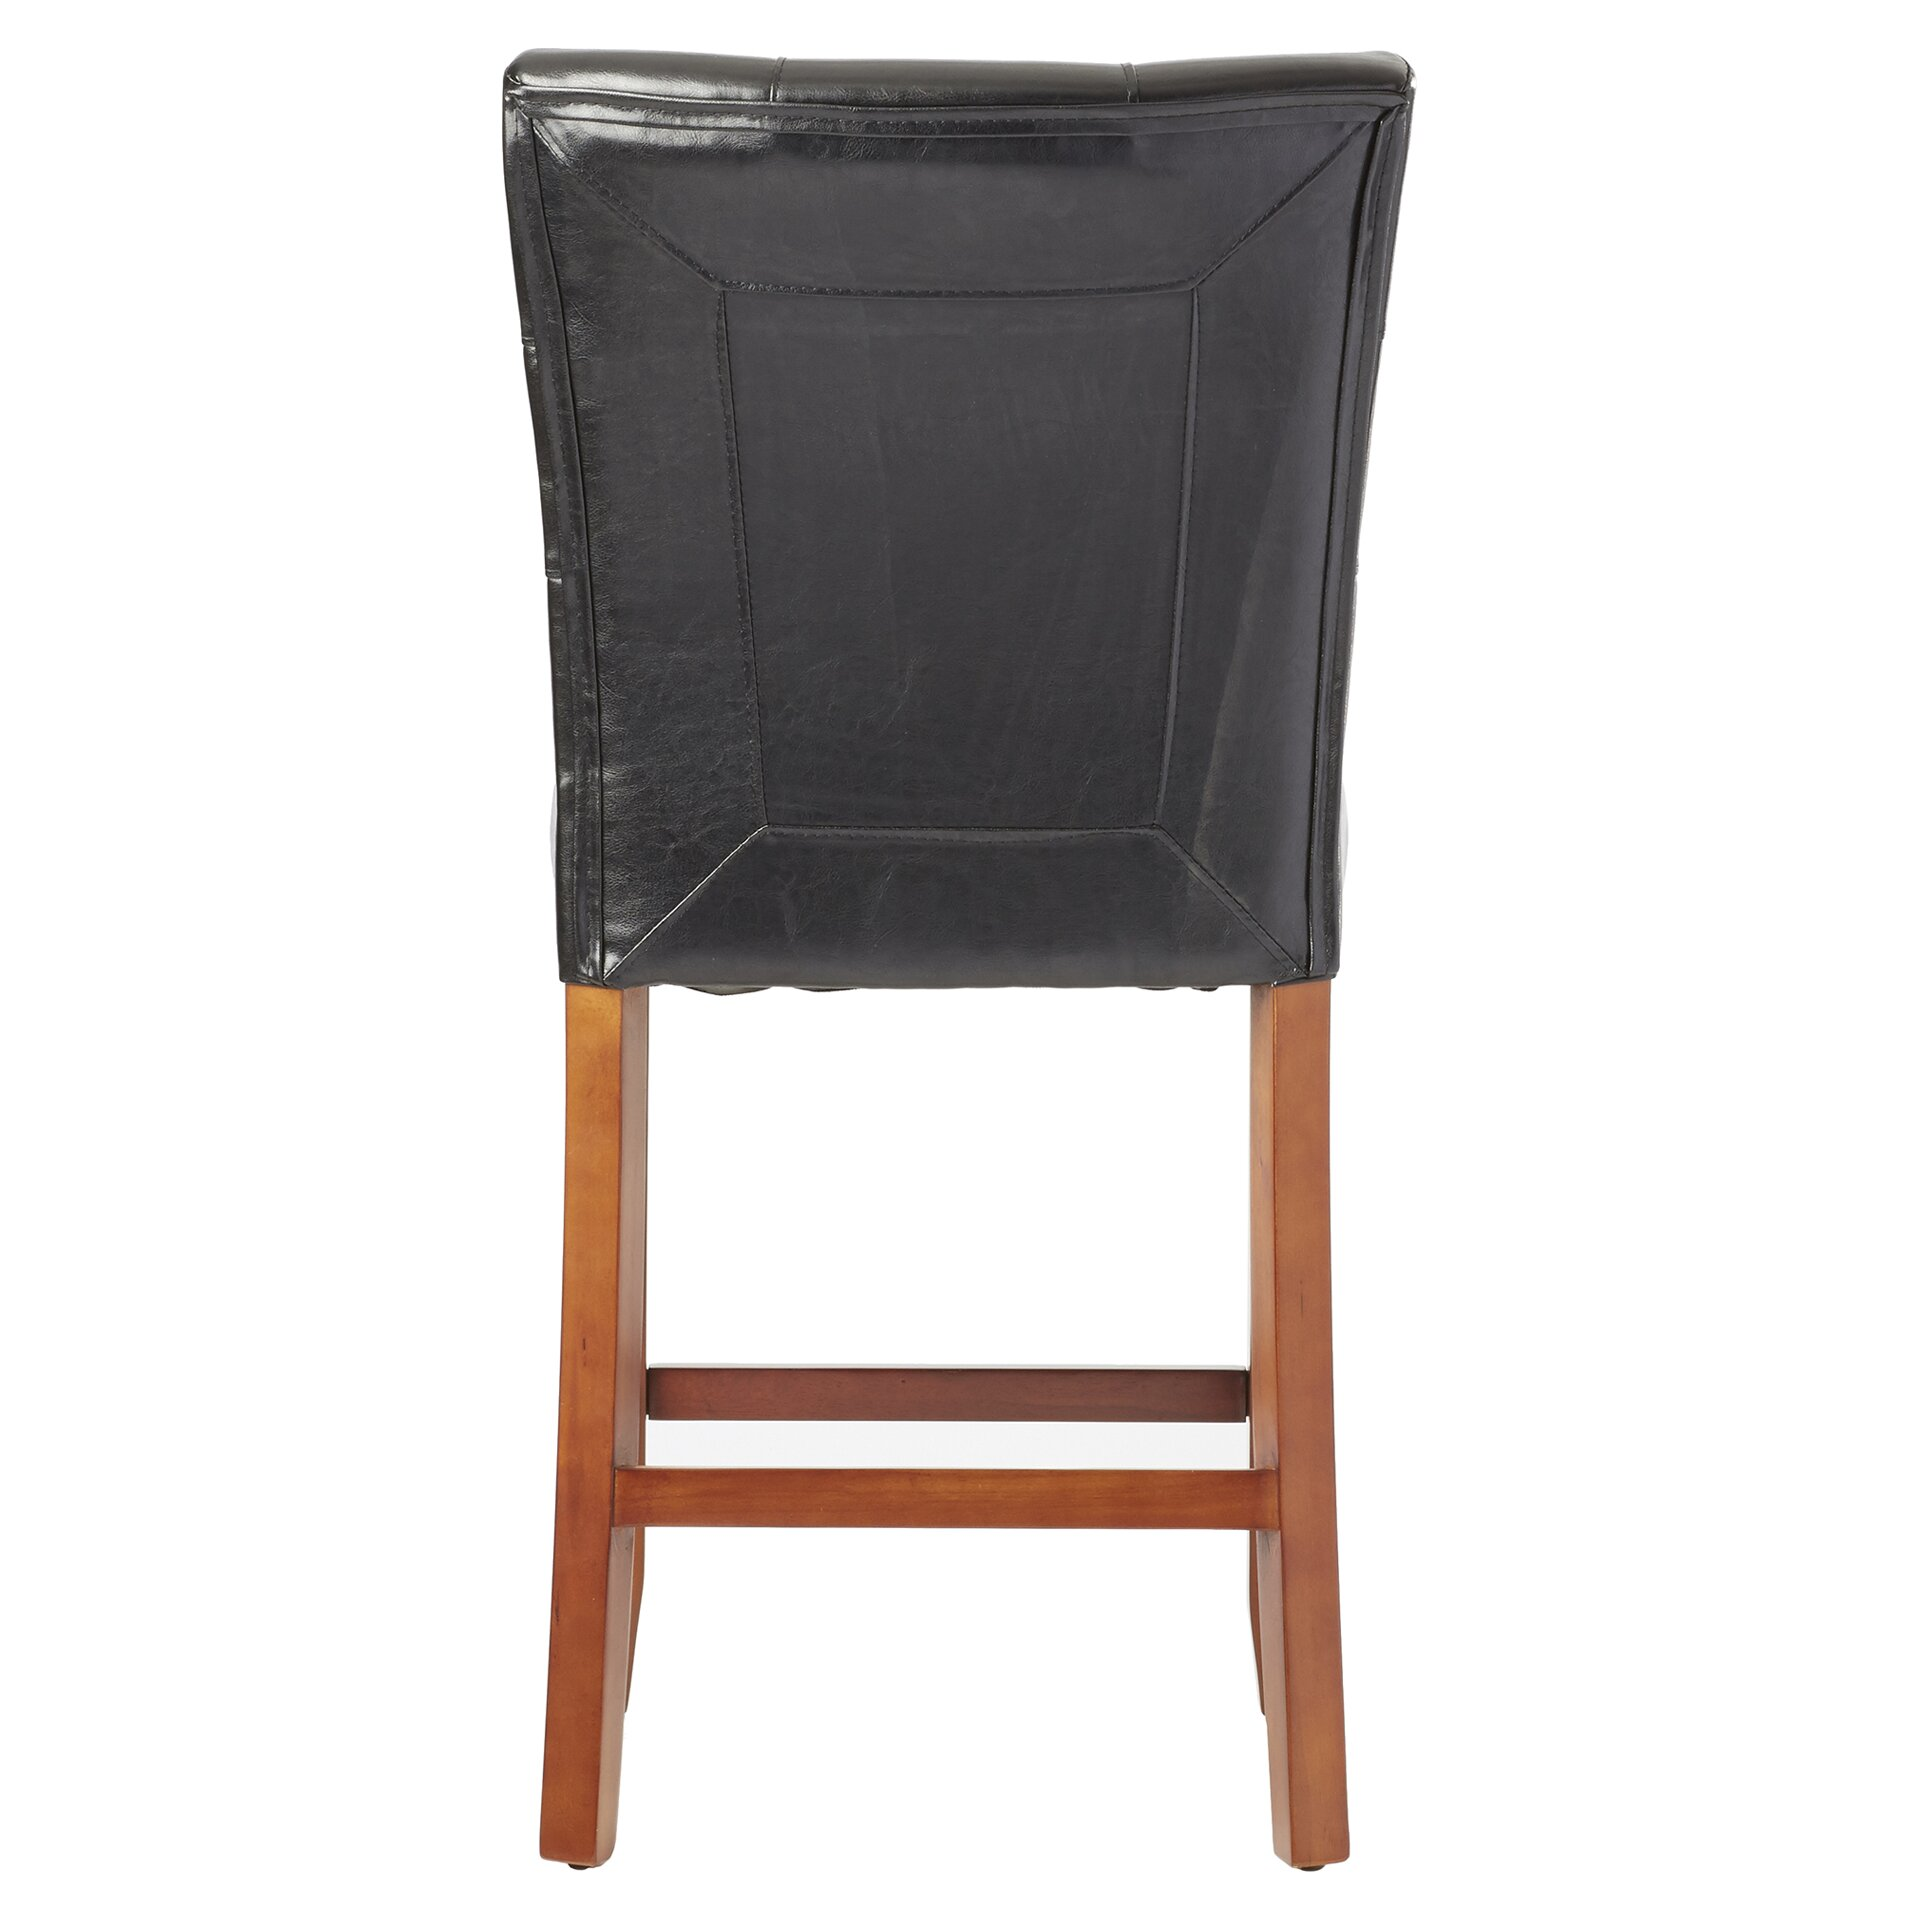 Darby home co tilman 24 bar stool reviews wayfair for 24 bar stools